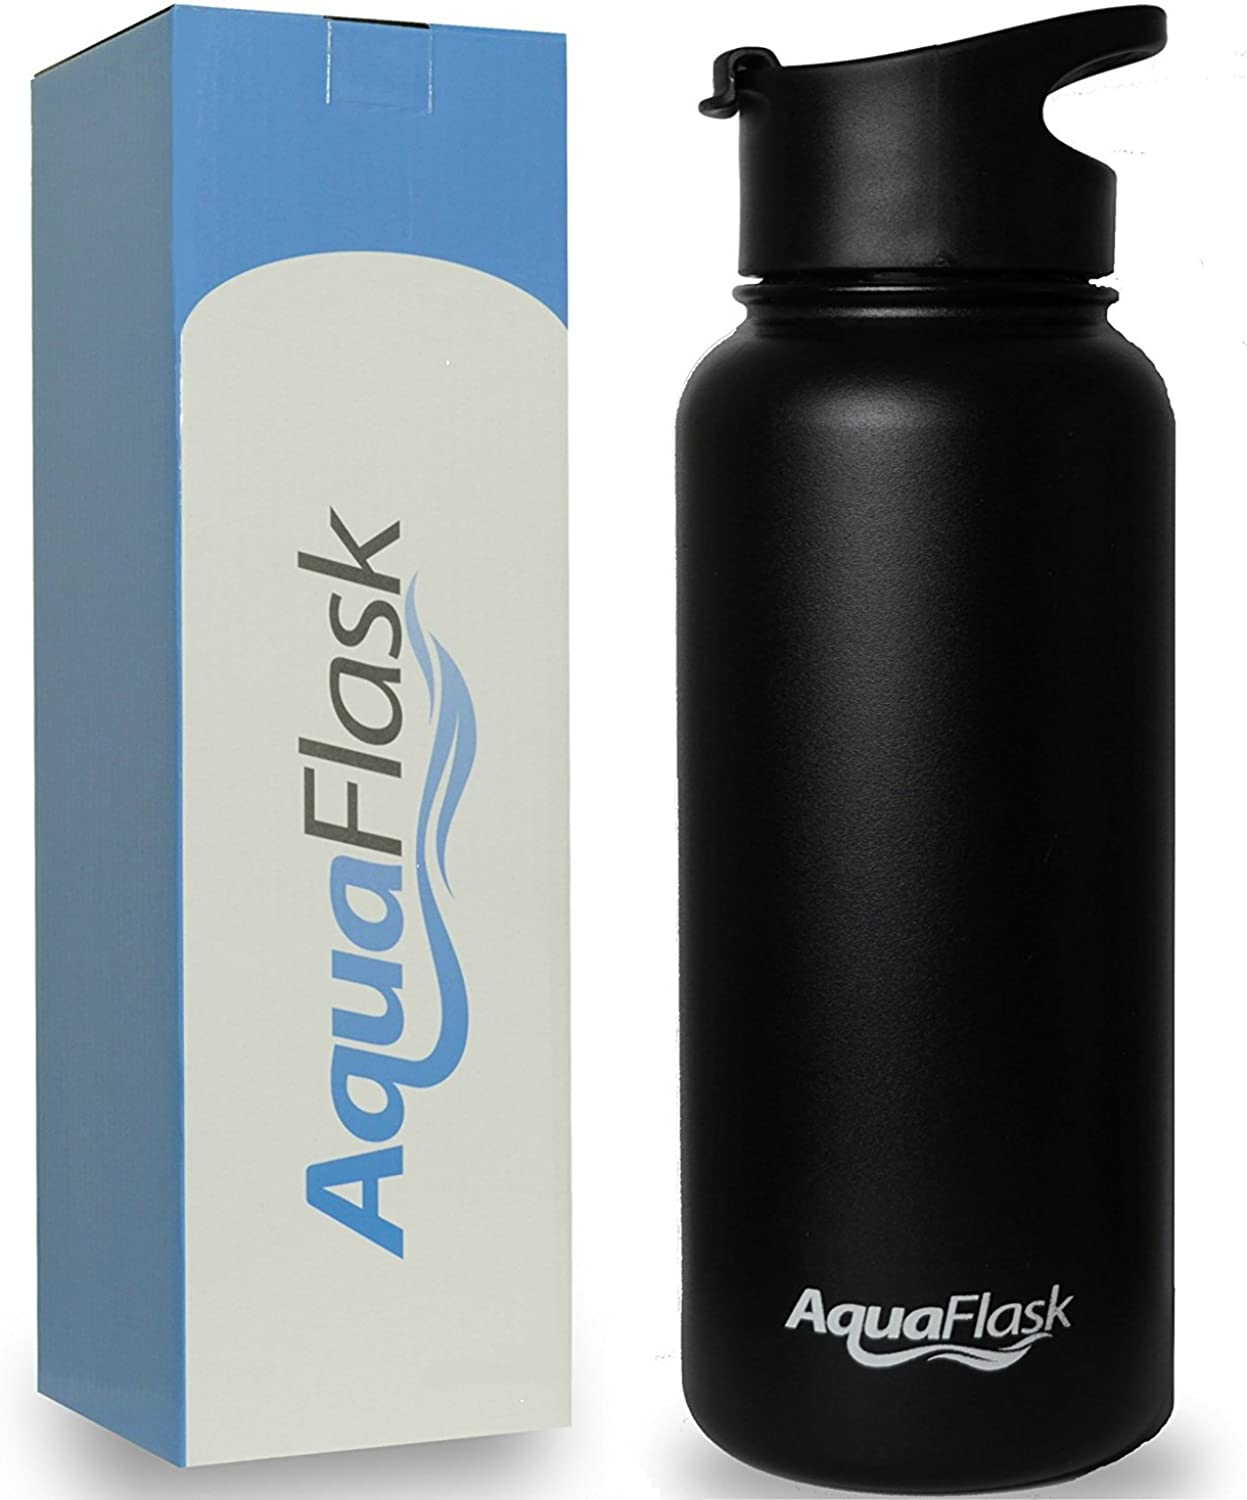 AquaFlask 32oz Vacuum Insulated Stainless Steel Water Bottle, Wide Mouth with Flip Top (32Ounce)